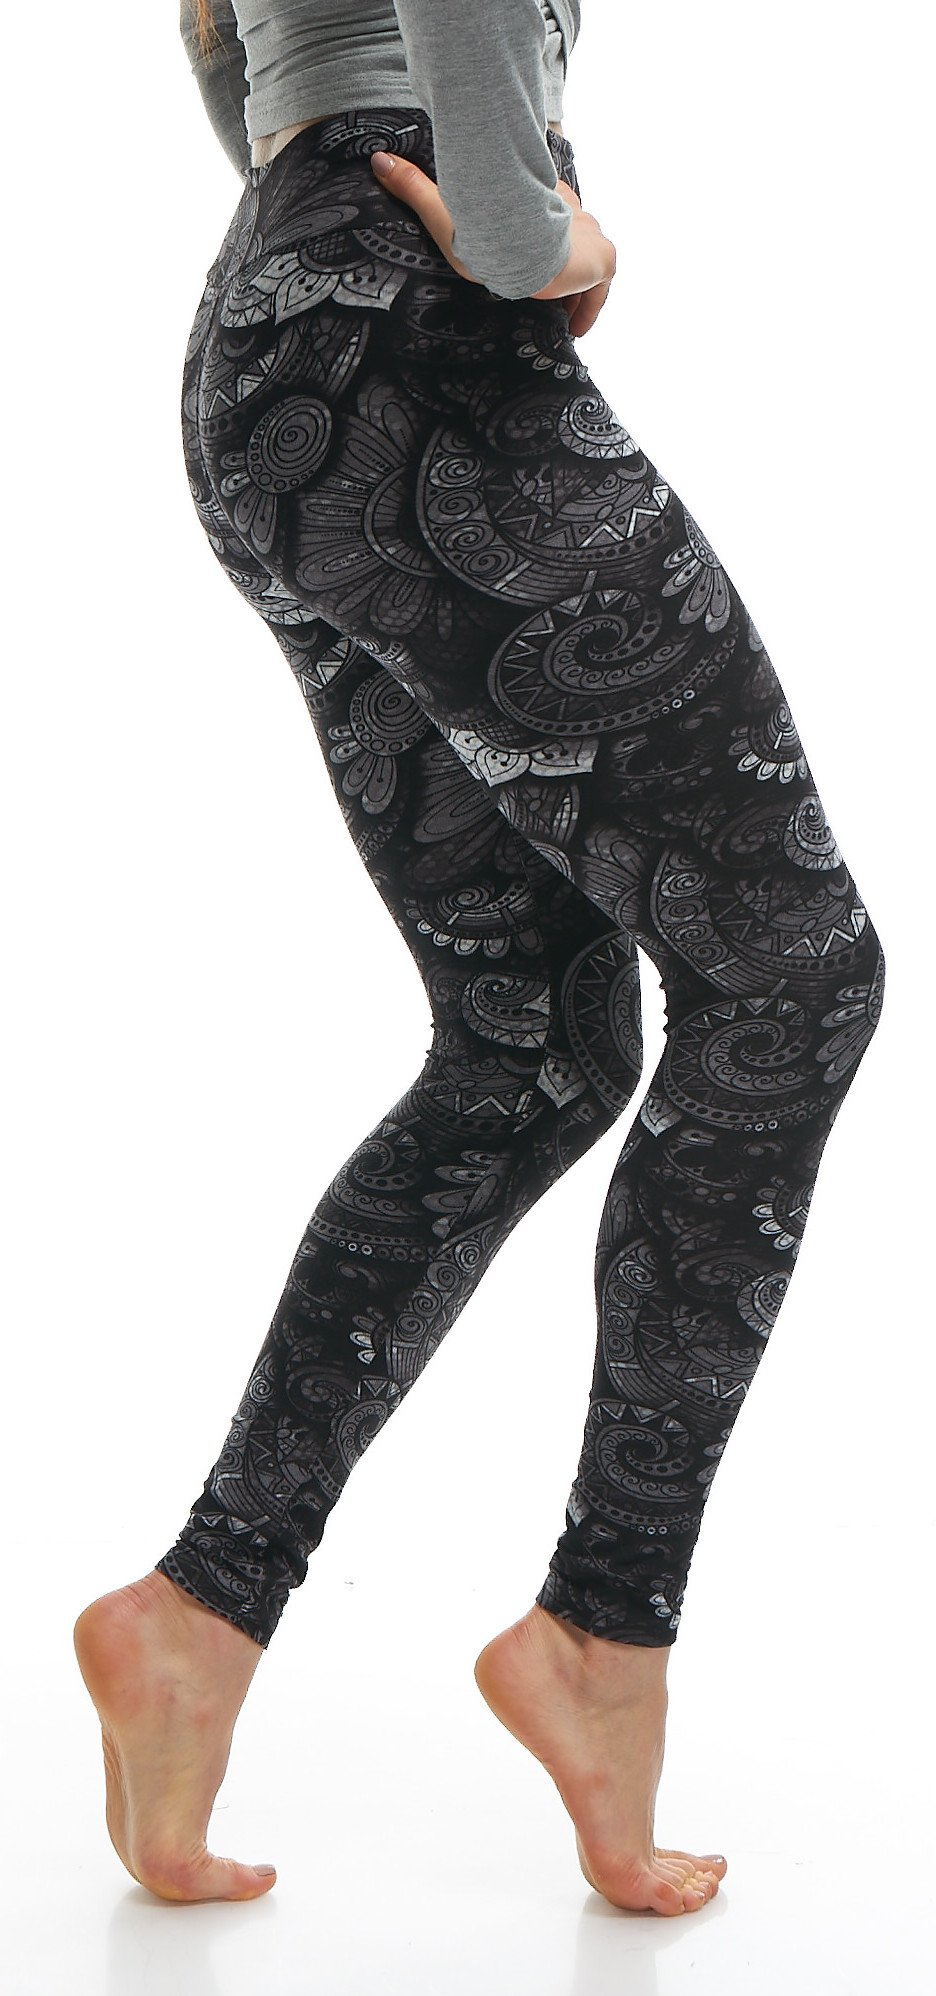 LMB Lush Moda Extra Soft Leggings with Designs- 505YF Floral Abstract Yoga by LMB (Image #4)